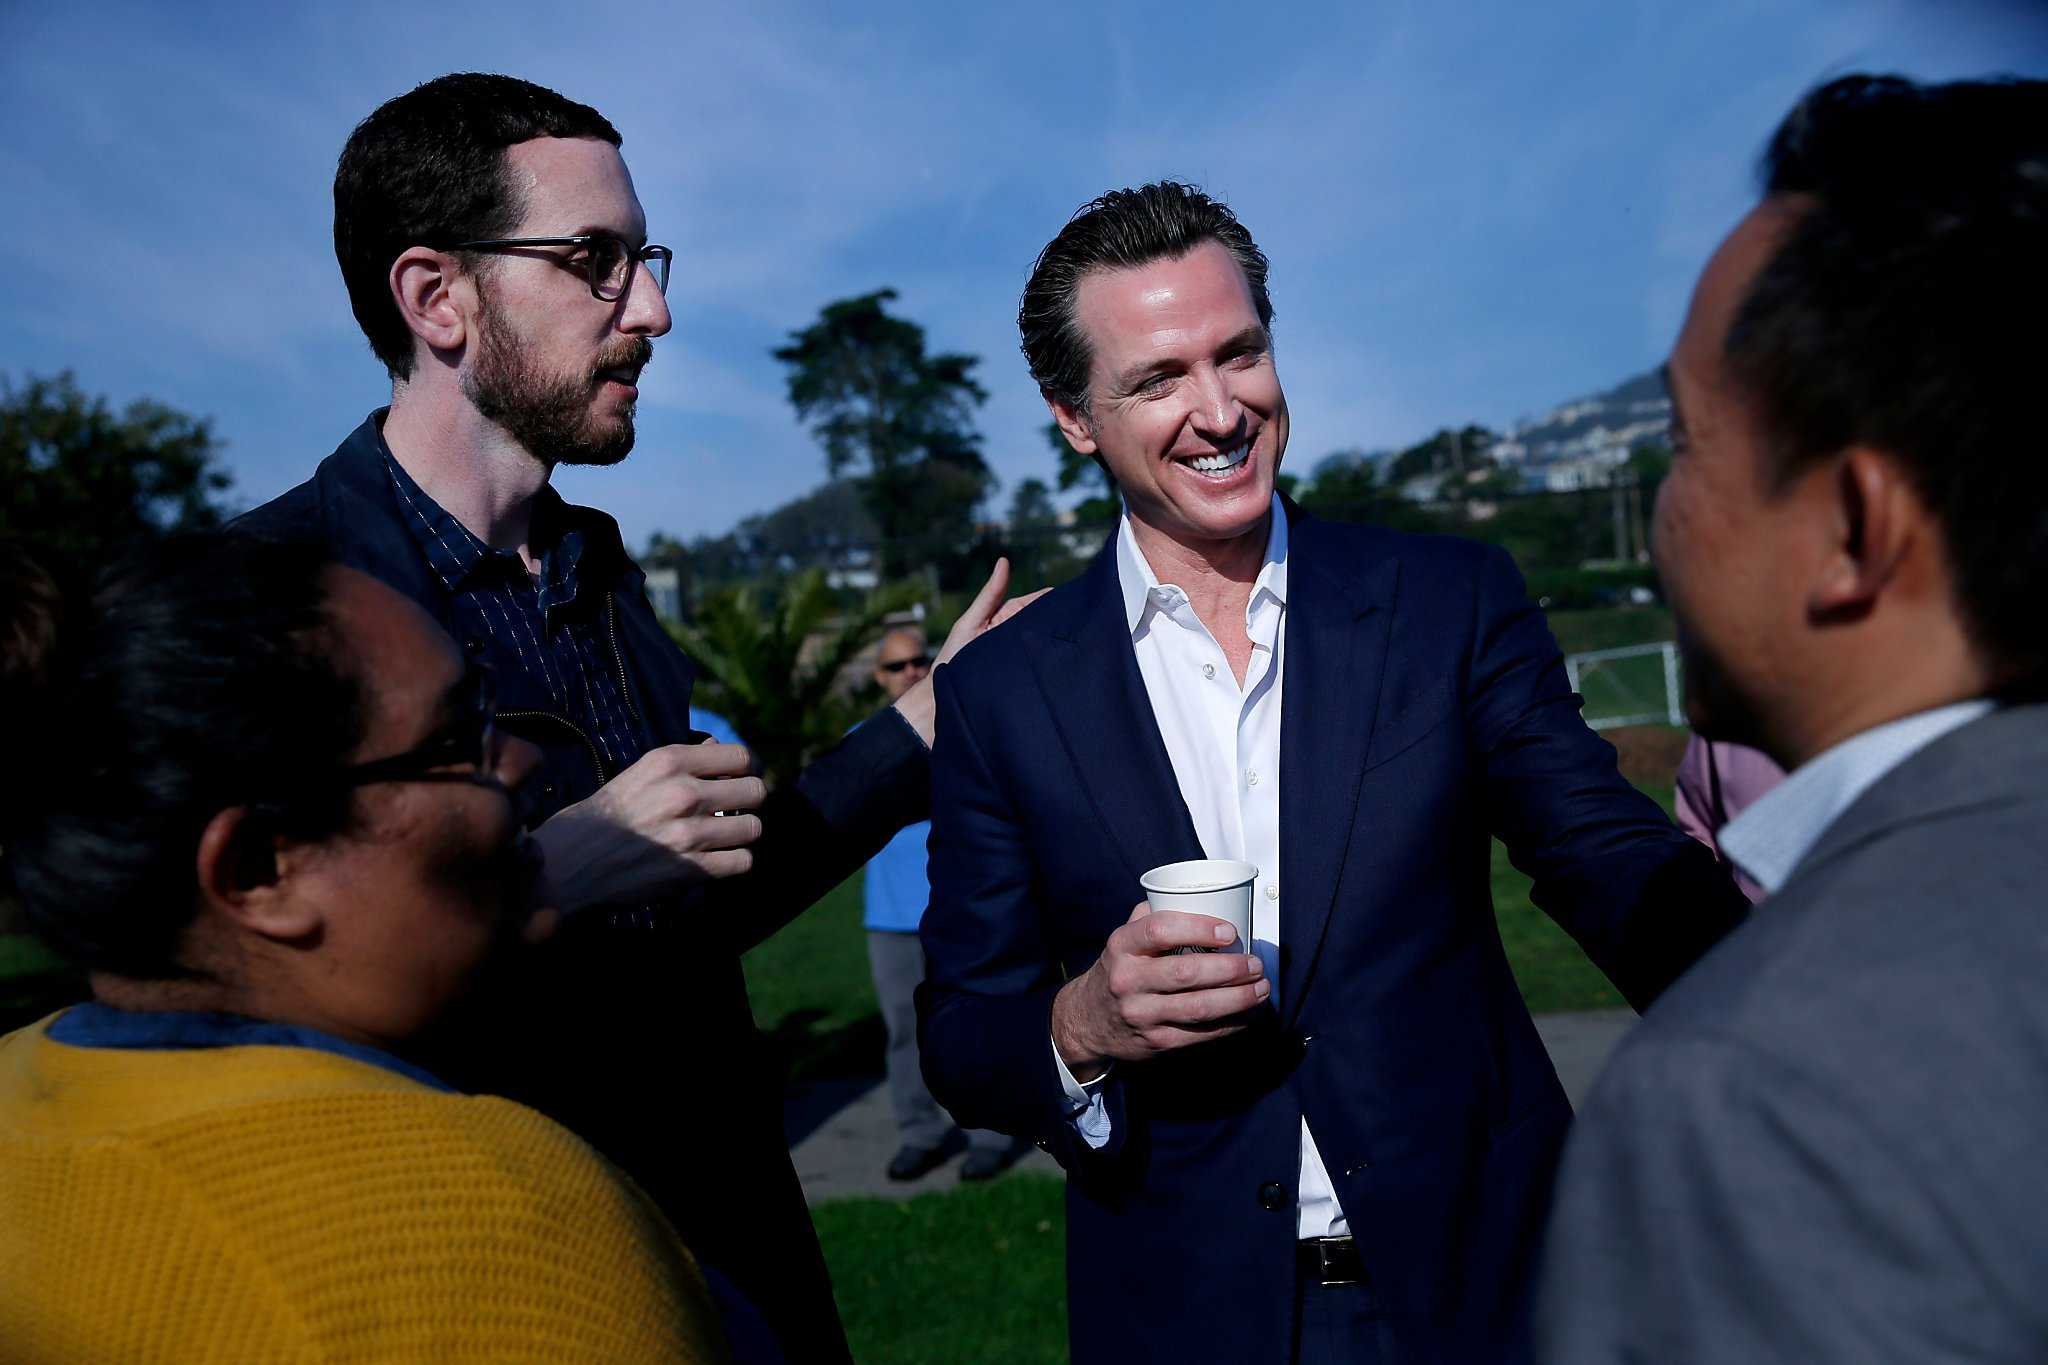 www.sfchronicle.com: California requires COVID tracking in LGBTQ community under bill signed by Newsom